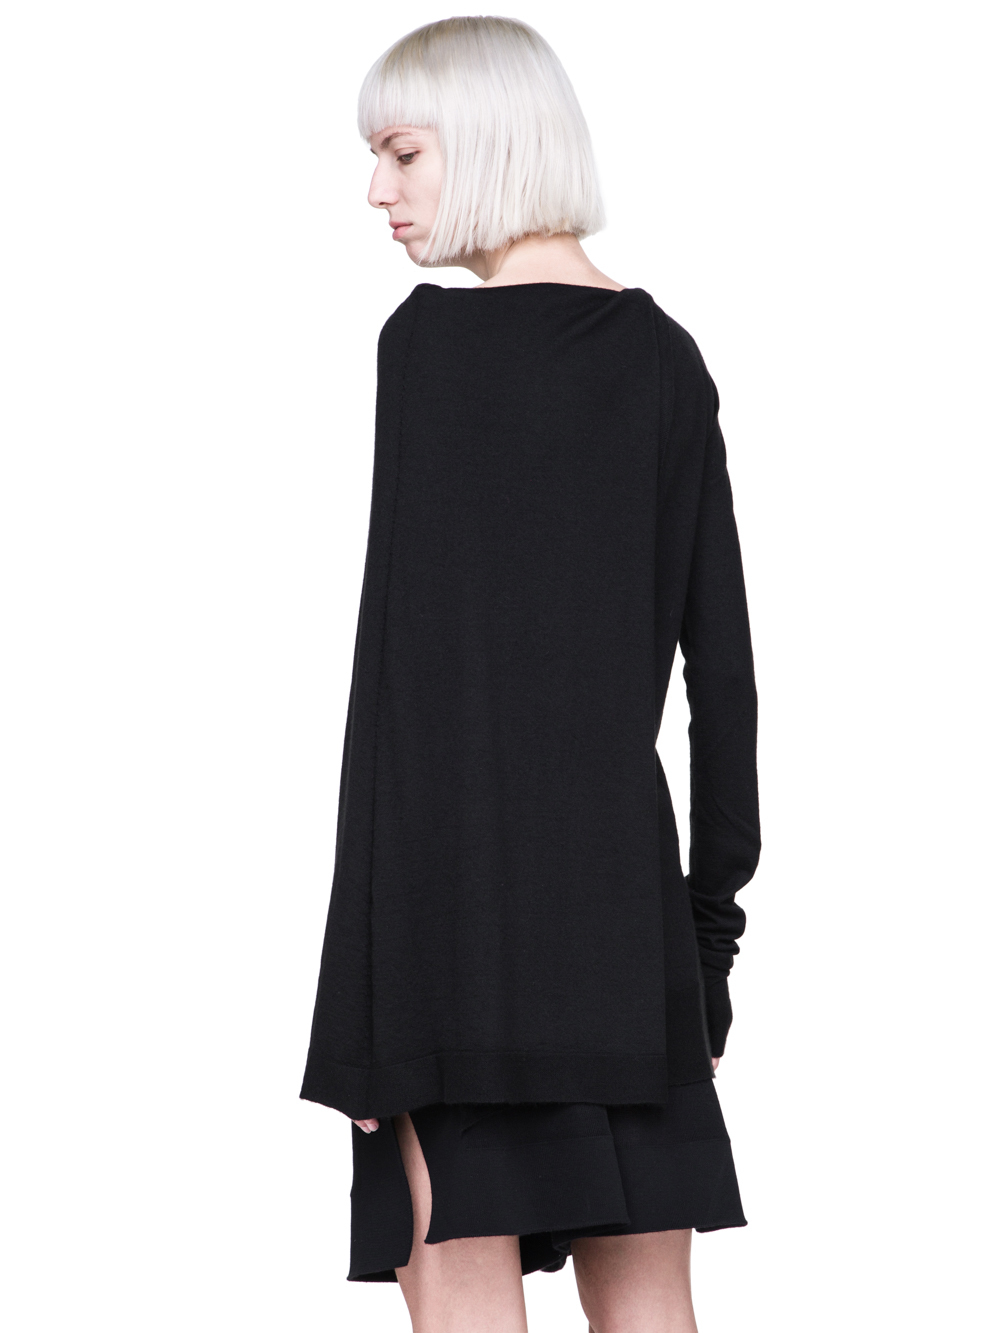 RICK OWENS FW18 SISYPHUS OFF-THE-RUNWAY CAPE TUNIC IN BLACK STRETCH CASHMERE